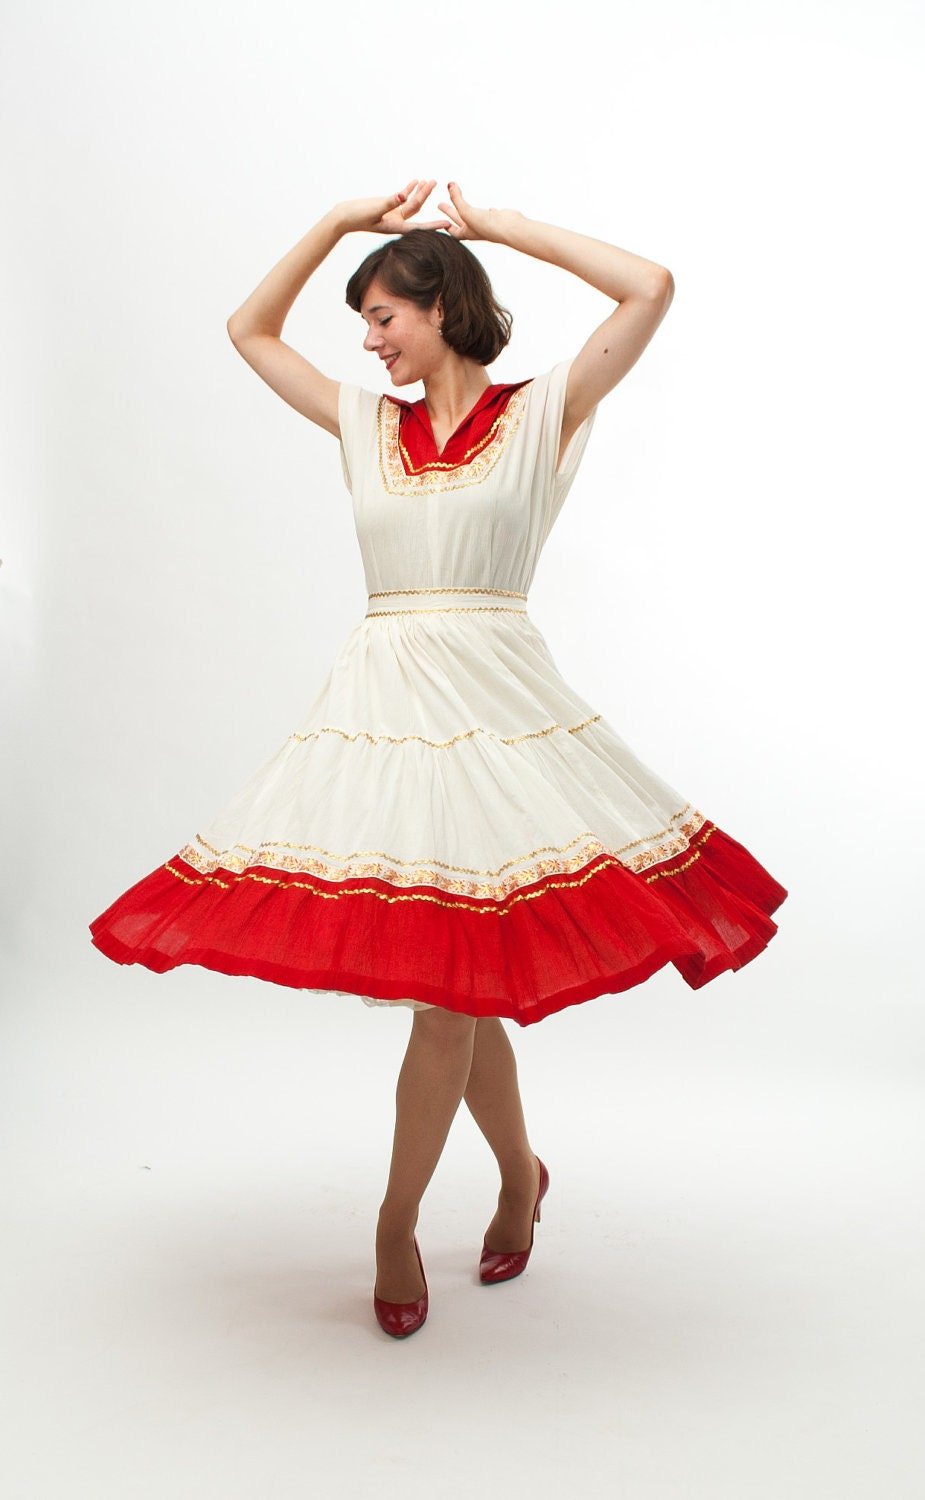 Vintage 1950s Patio Dress - 50s Western Dress - Red and White - concettascloset